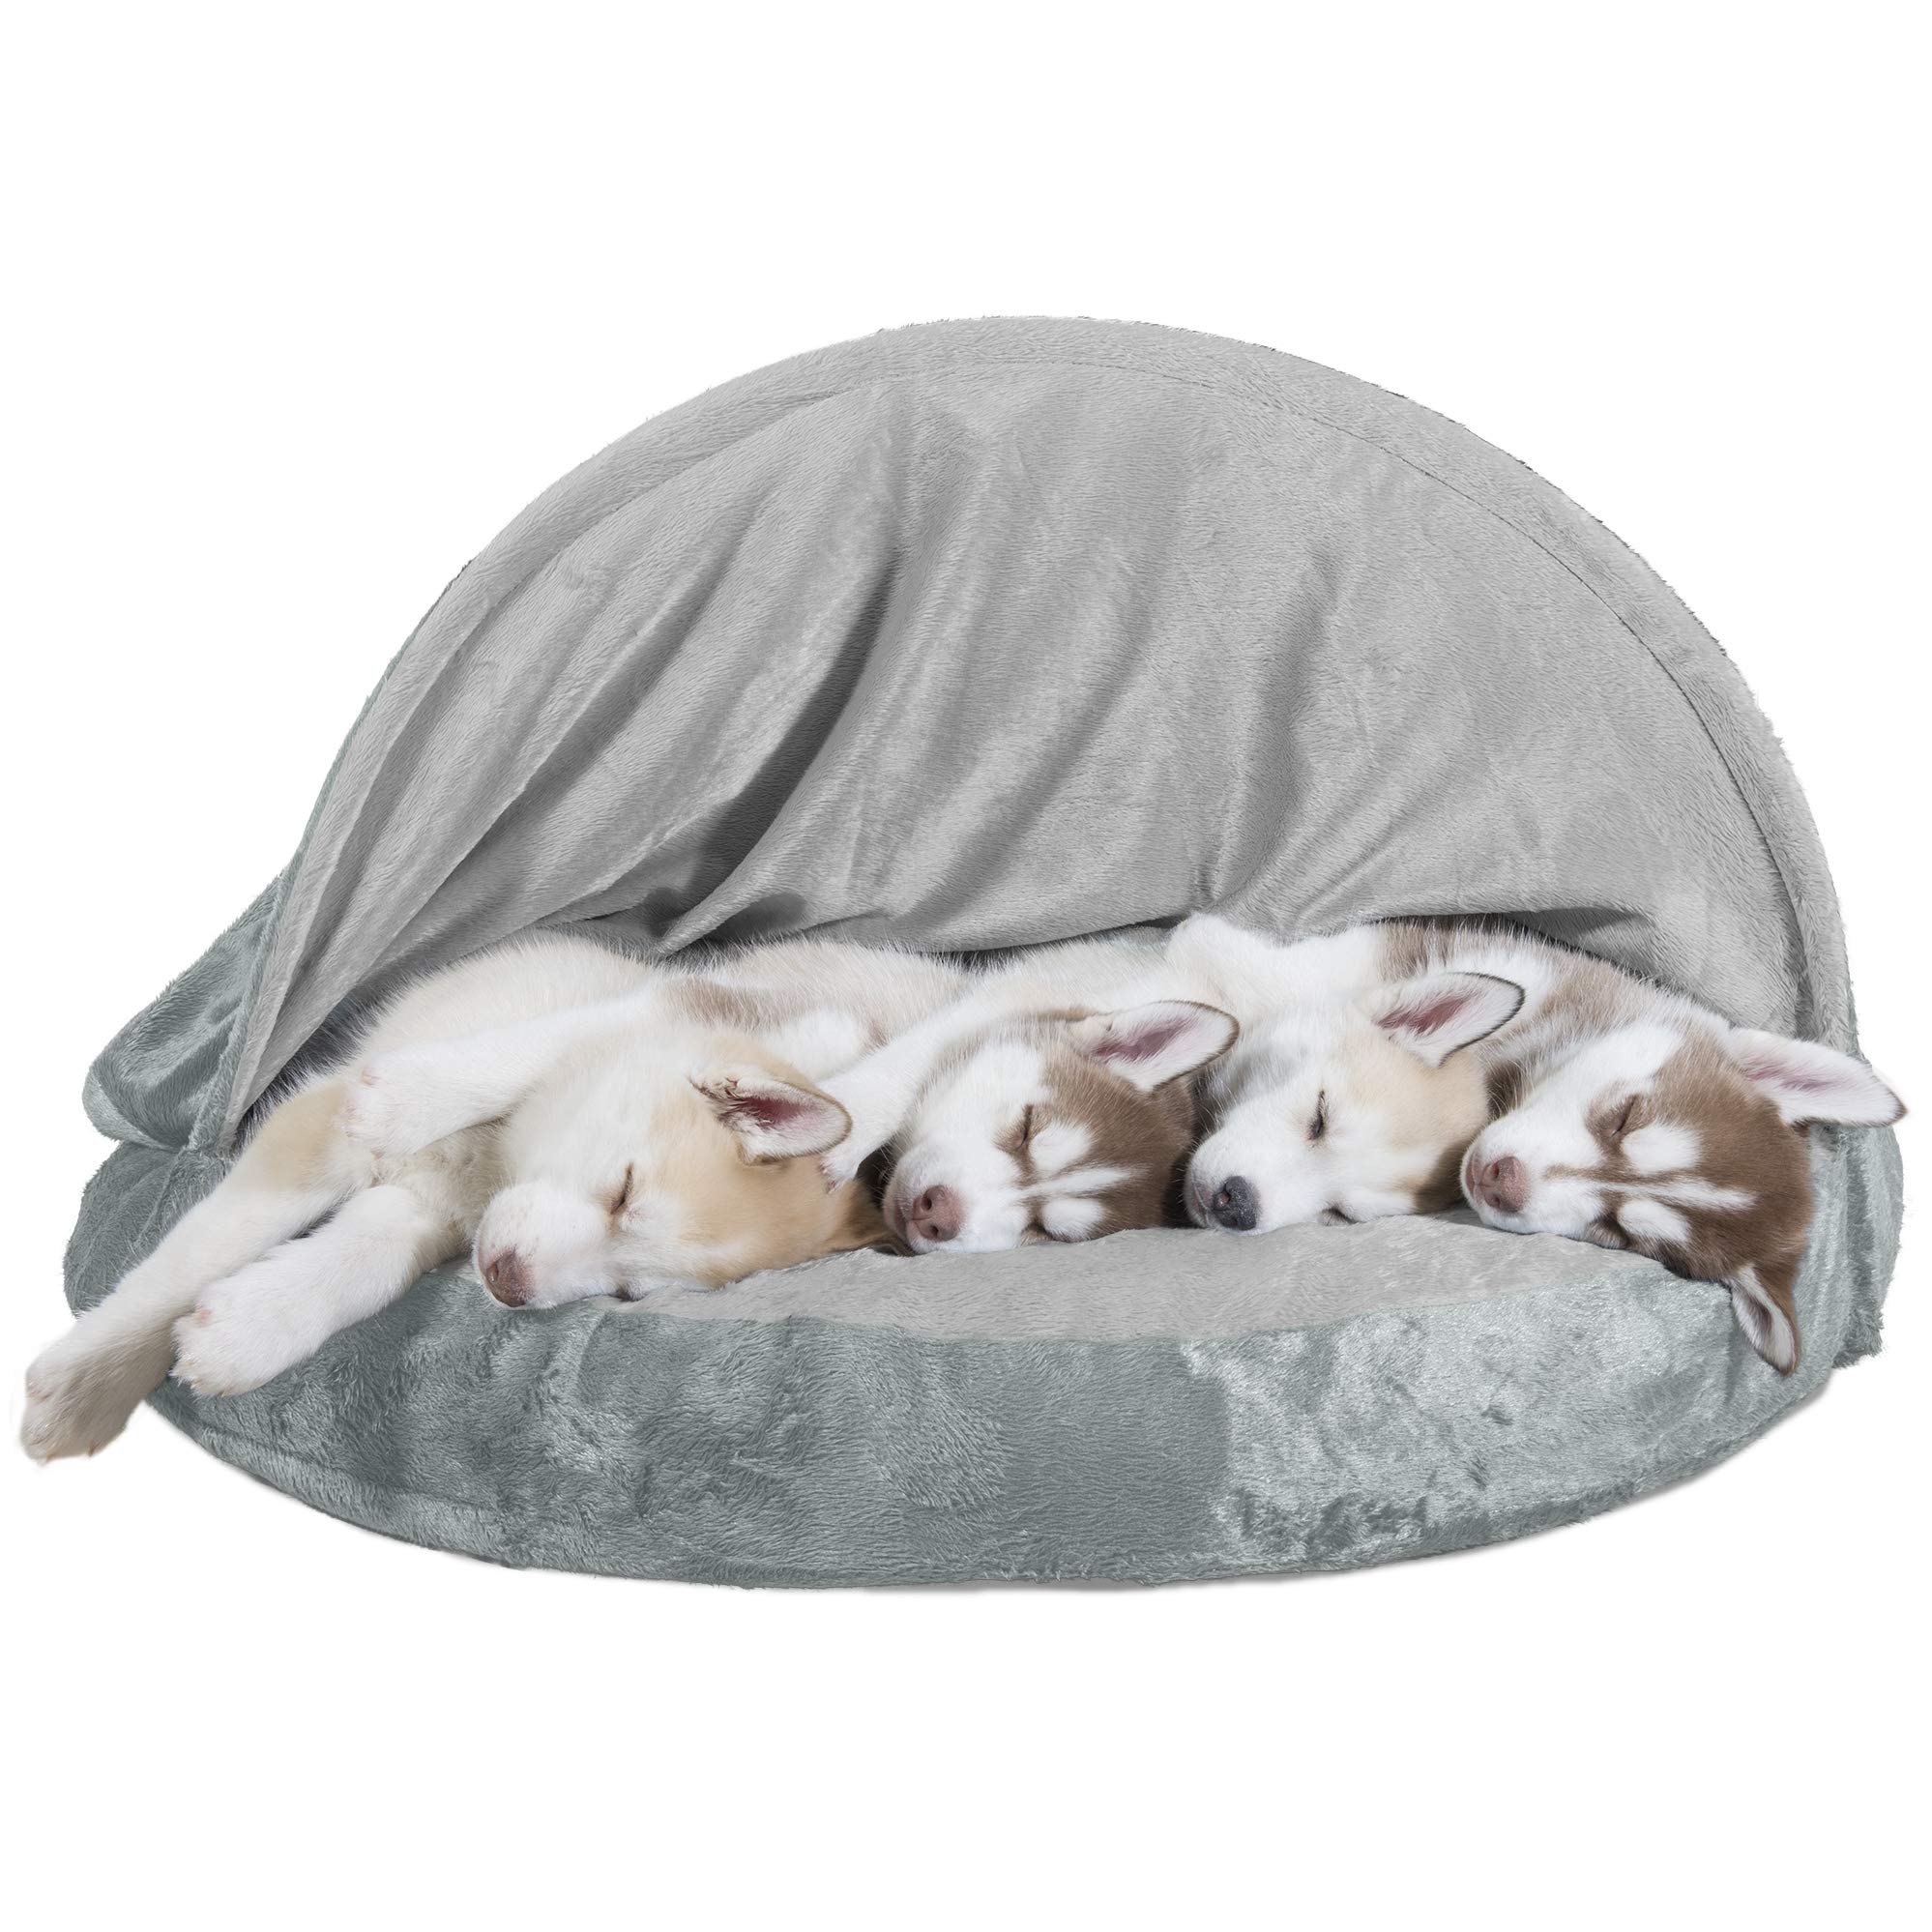 Furhaven Pet Dog Bed   Orthopedic Round Cuddle Nest Micro Velvet Snuggery Blanket Burrow Pet Bed w/ Removable Cover for Dogs & Cats, Silver, 35-Inch by Furhaven